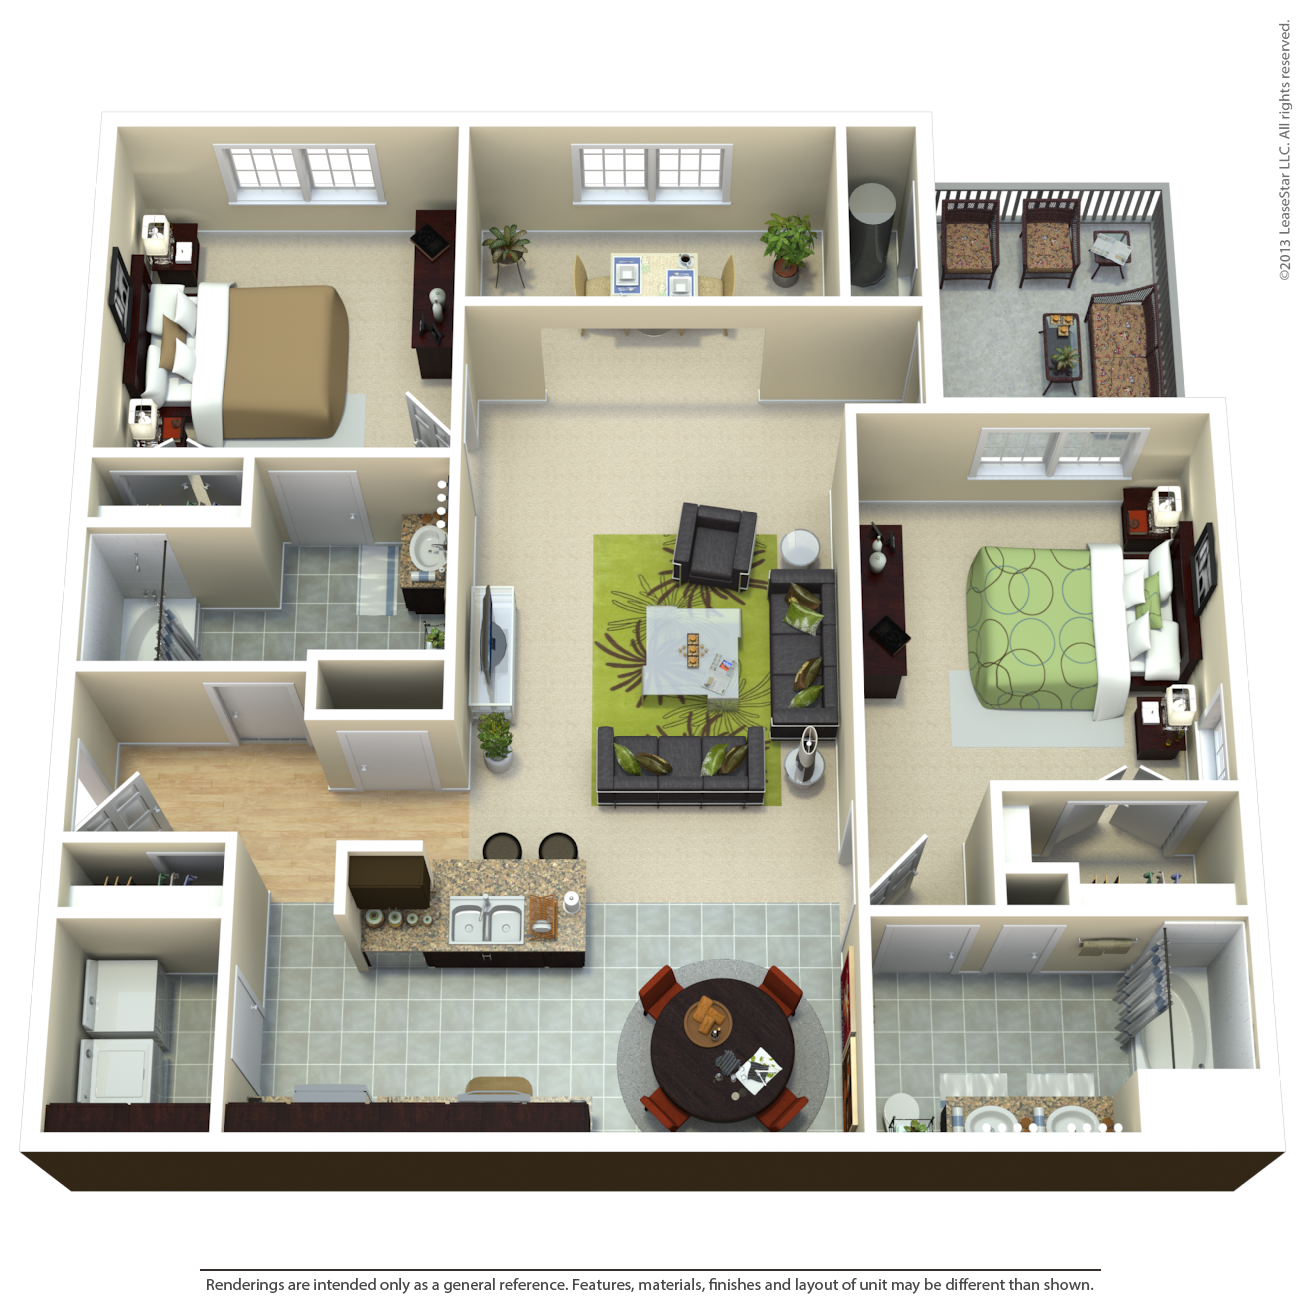 The Shaw Floor Plan 4